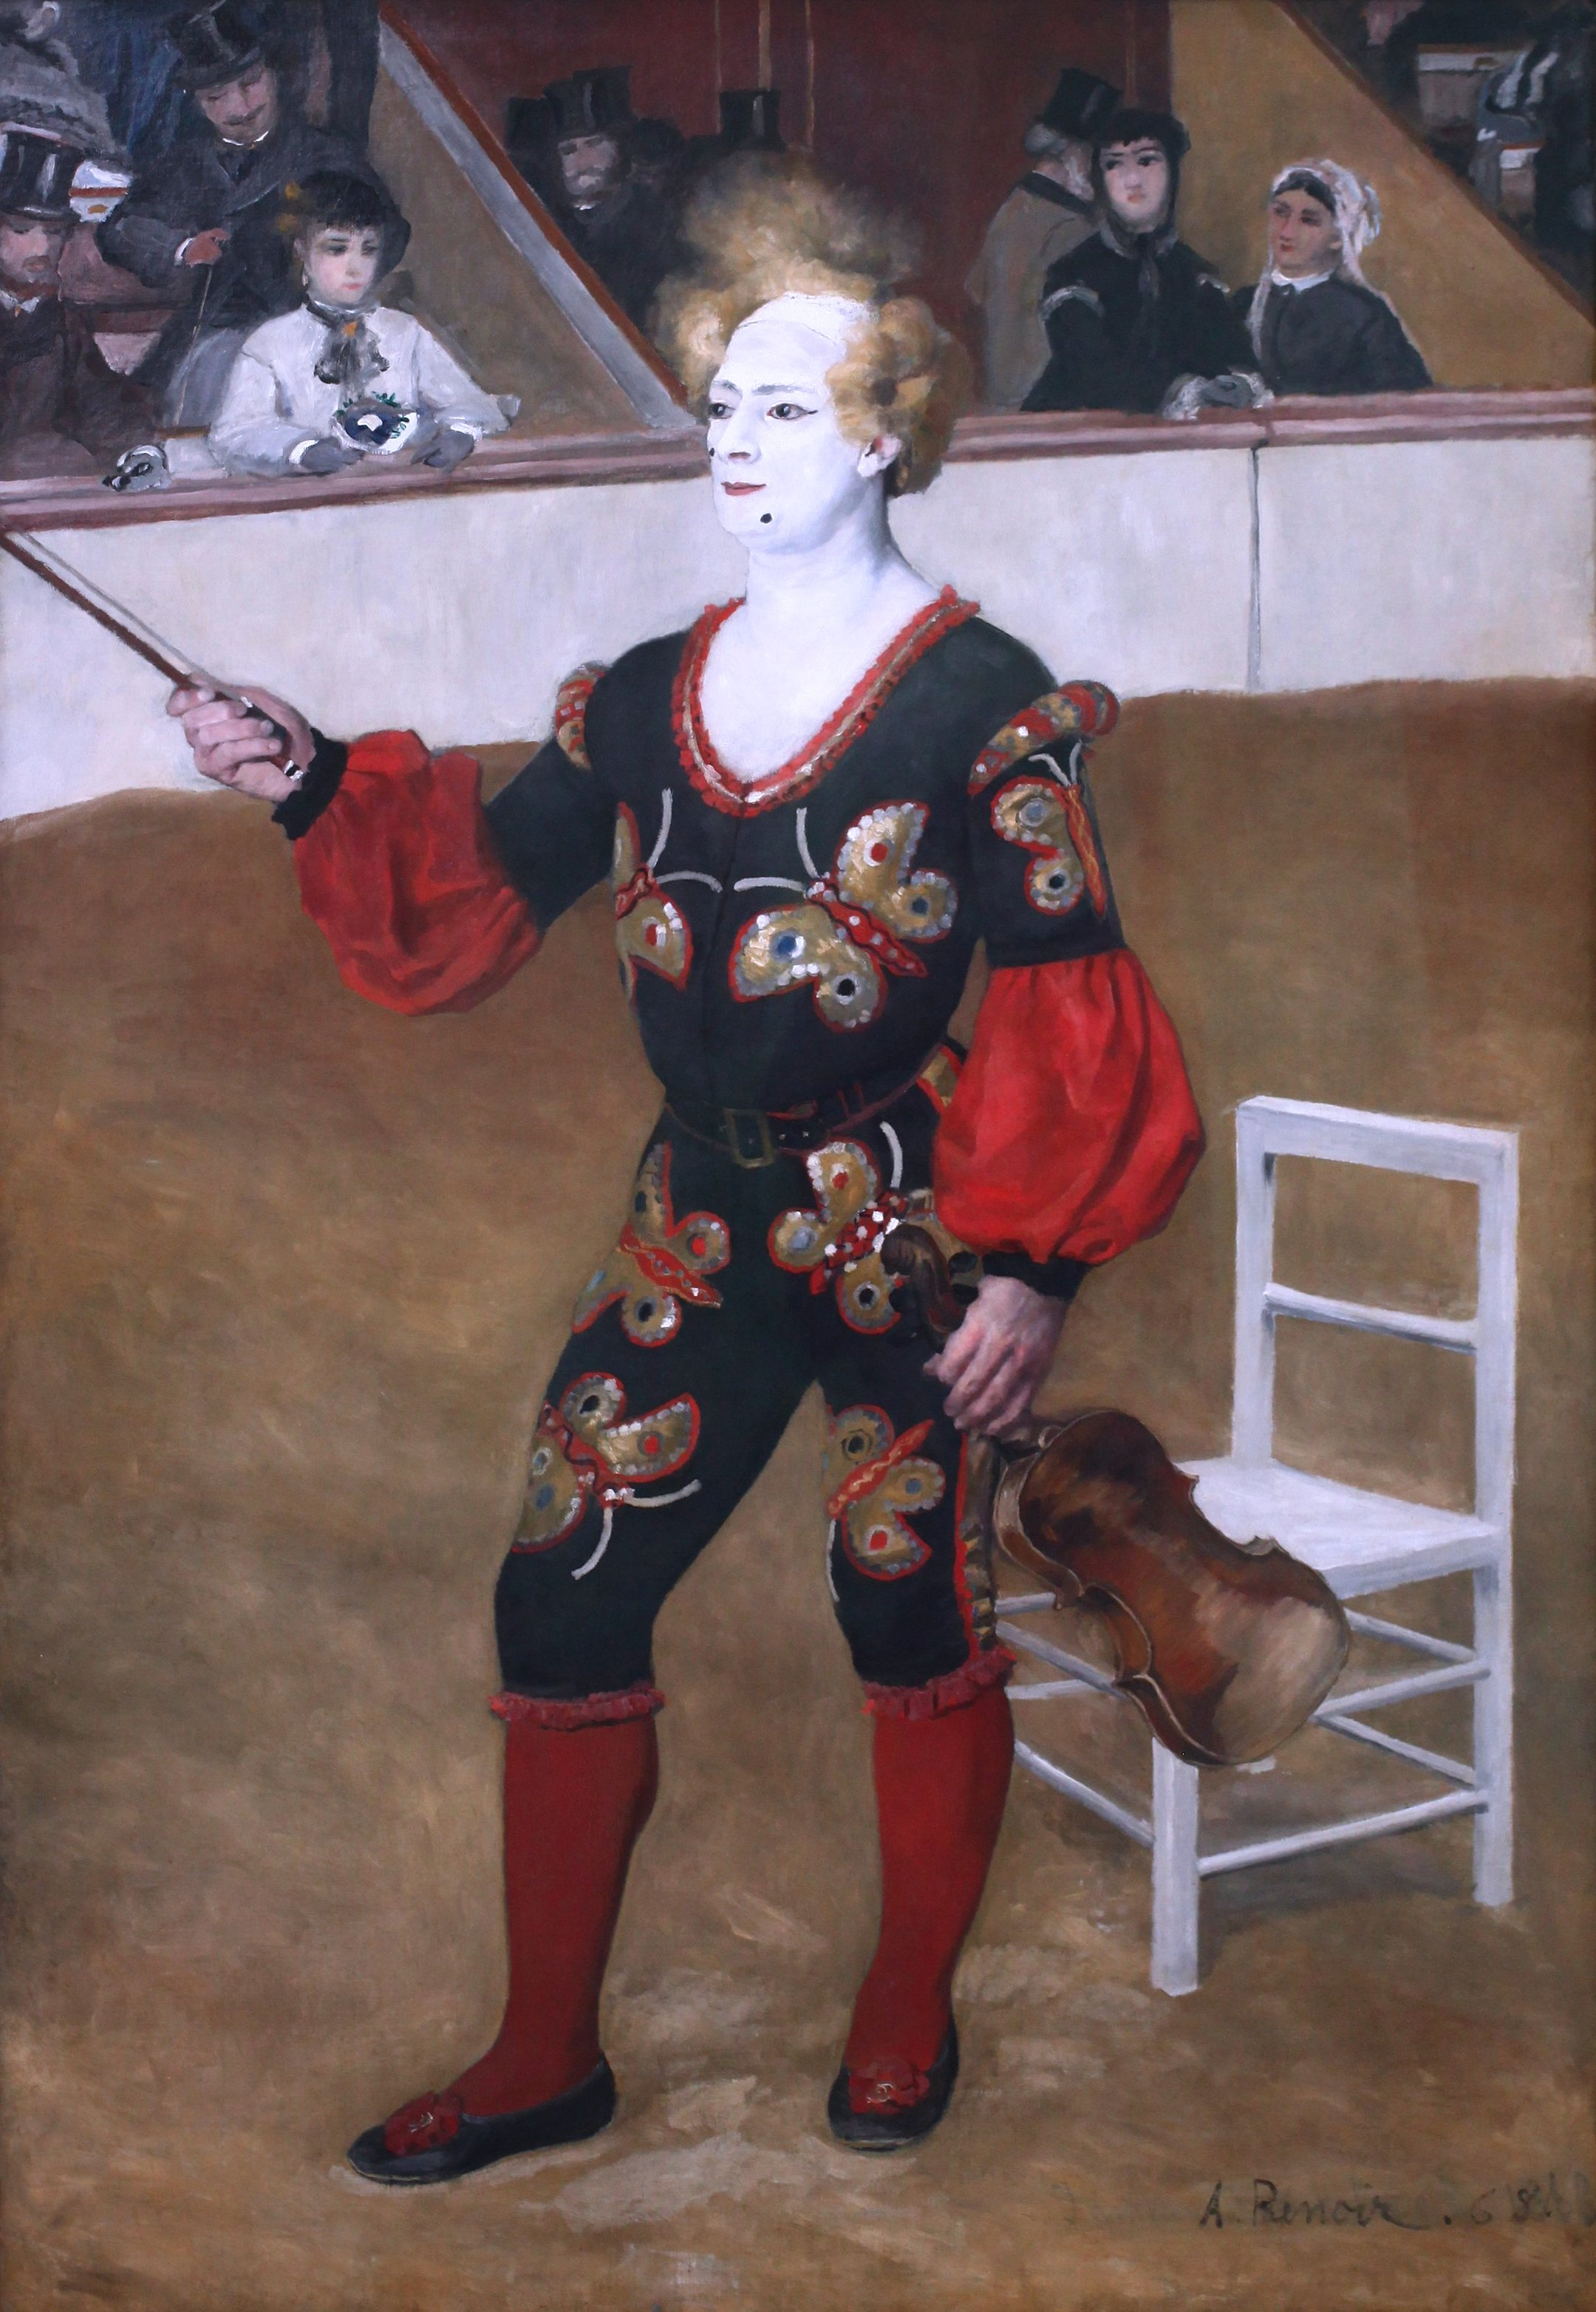 Pierre-Auguste Renoir - The Clown [1868]